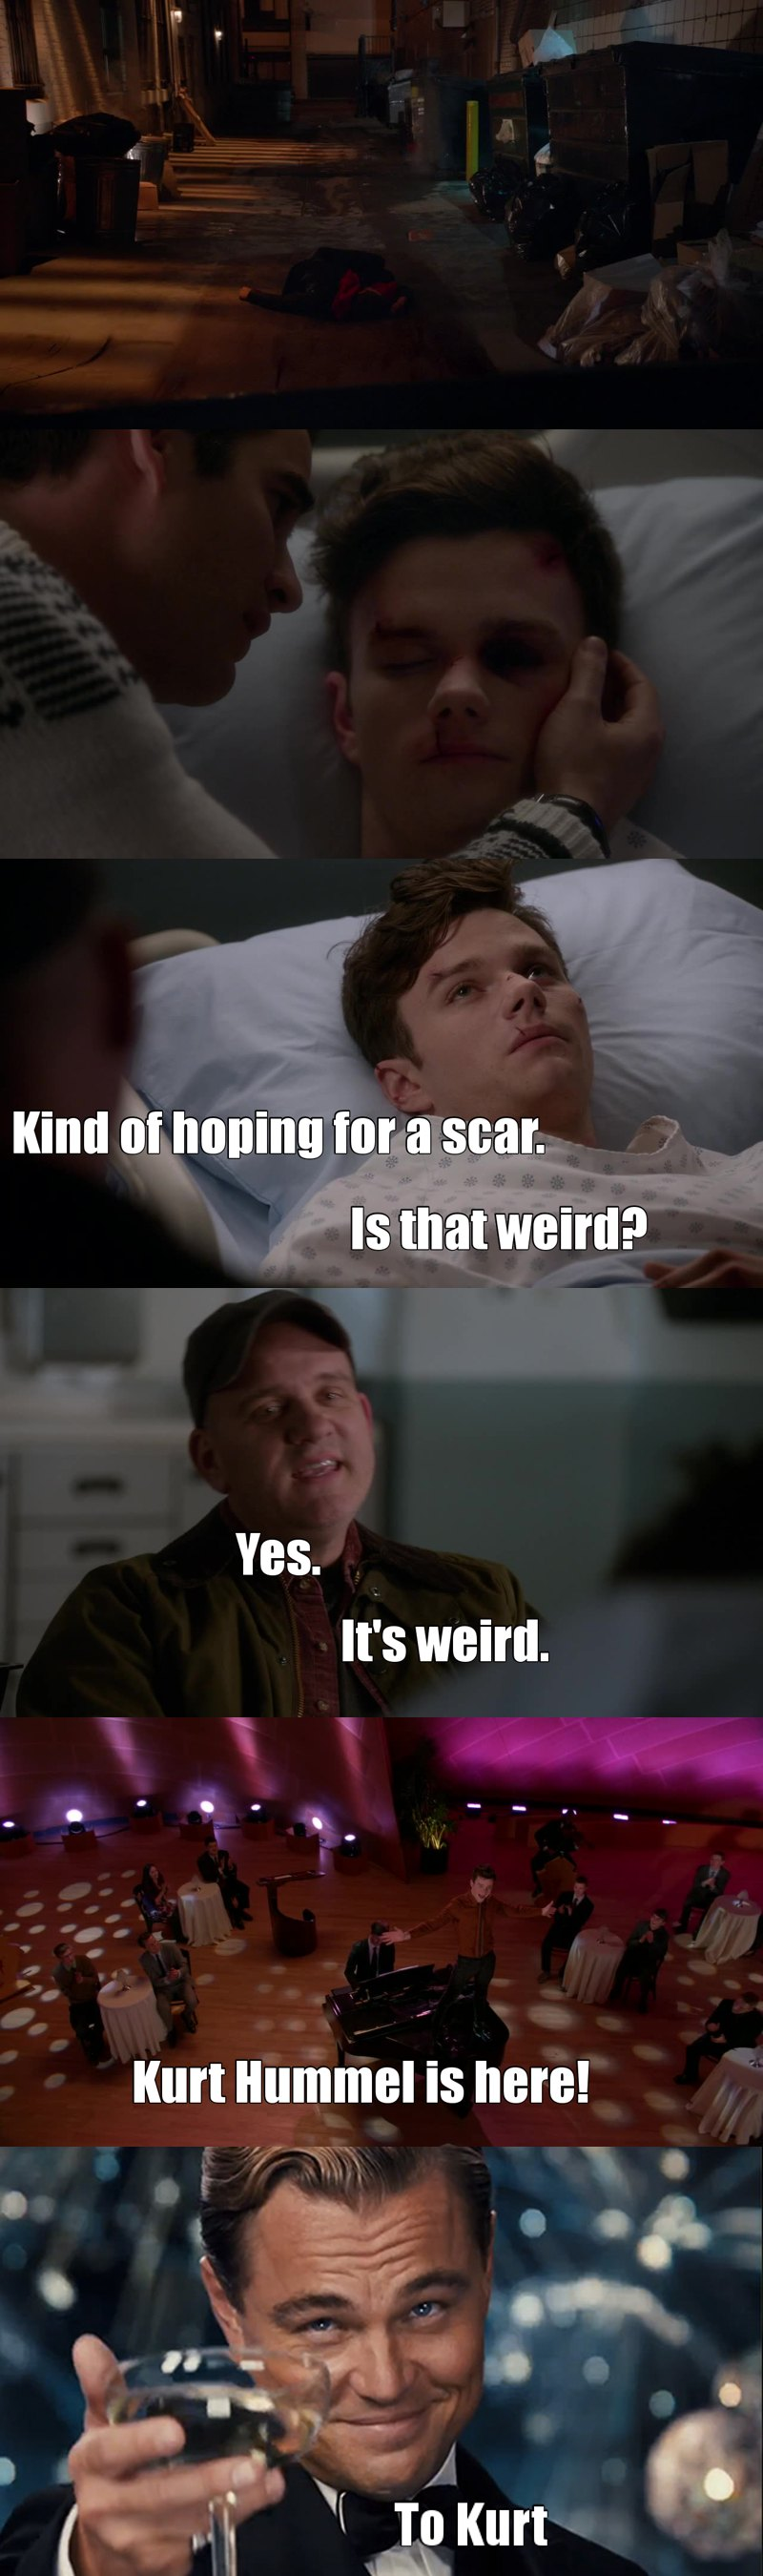 Kurt Hummel is here, fighting and making a joke of it all, bitches!